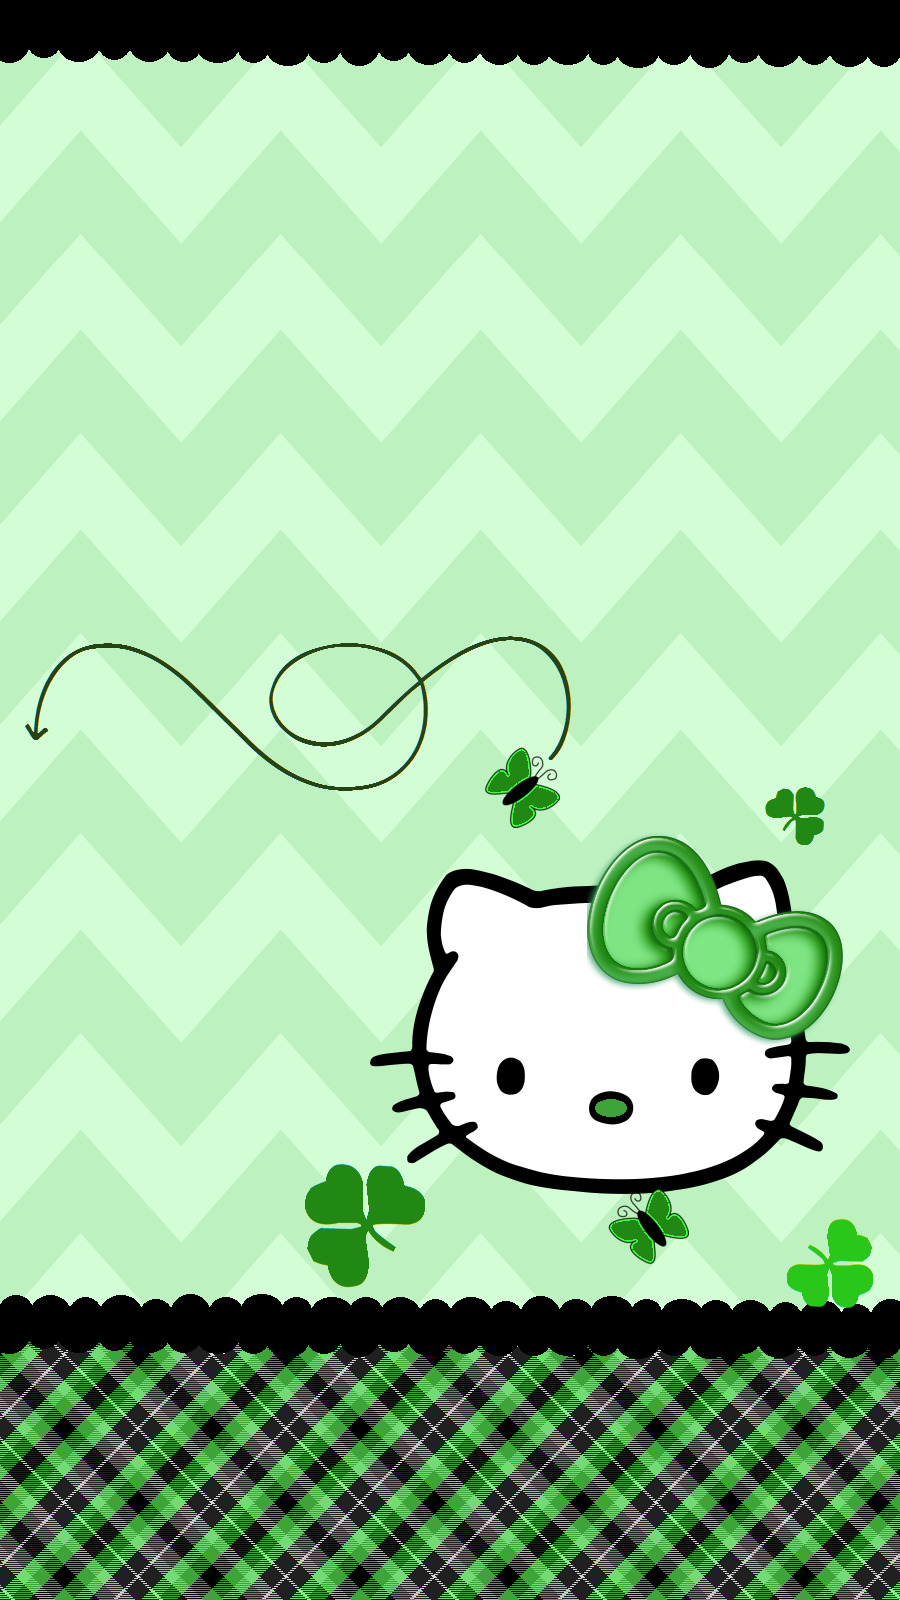 iPhone Wall St. Patrick's Day tjn Hello kitty